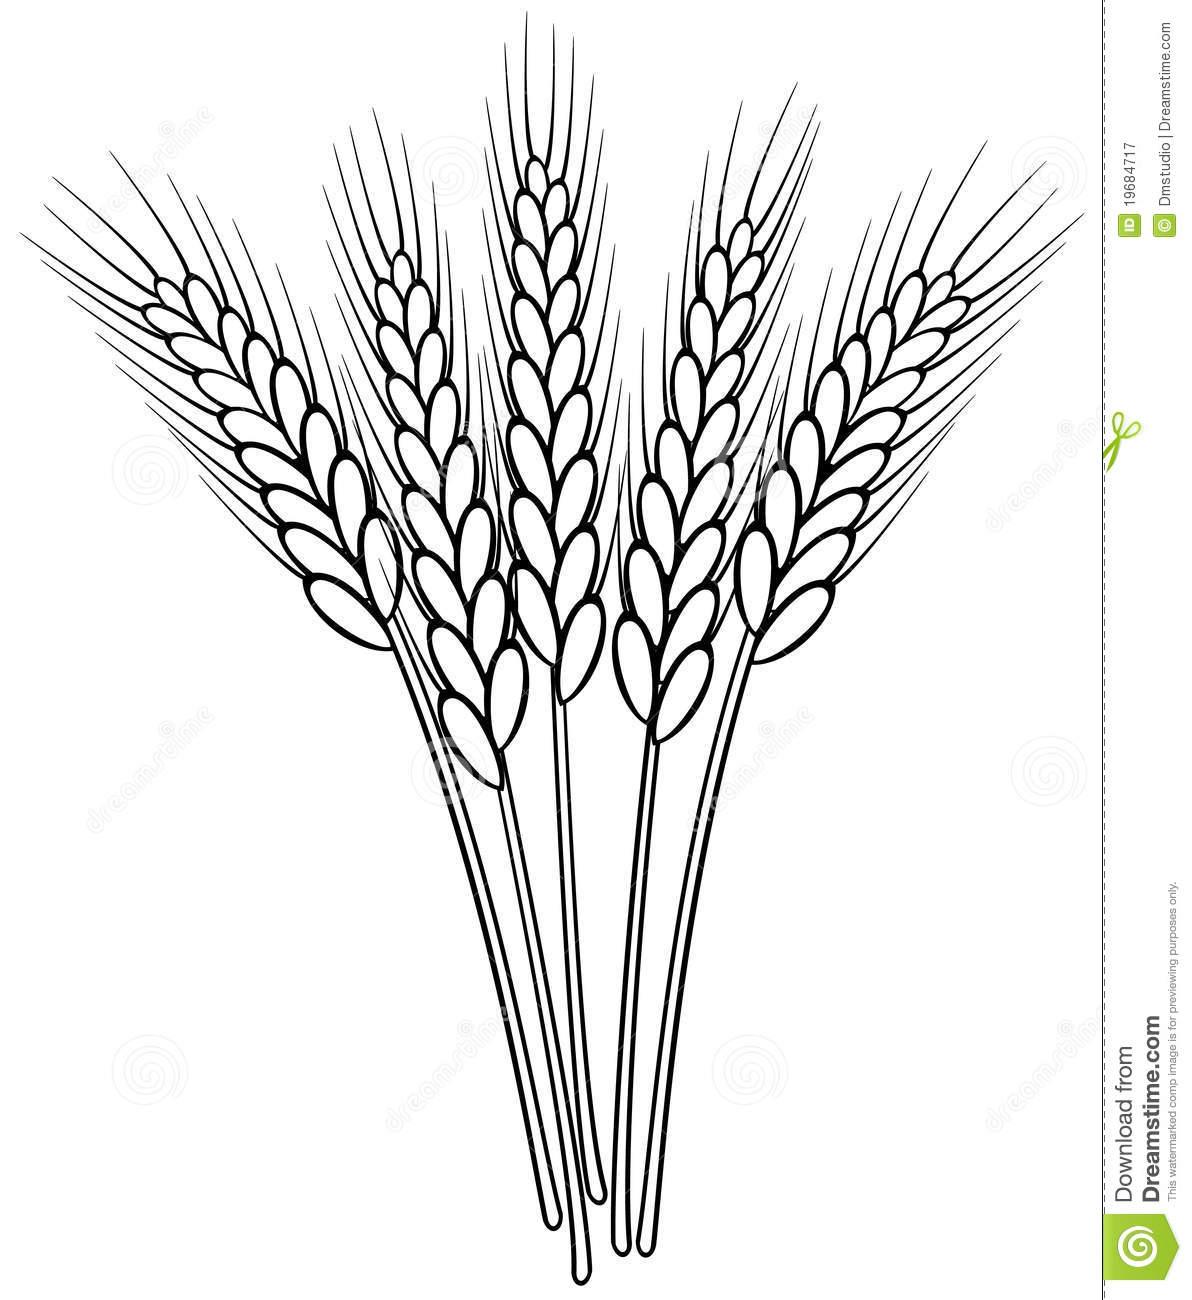 Black And White Wheat Ears Stock Vector Illustration Of